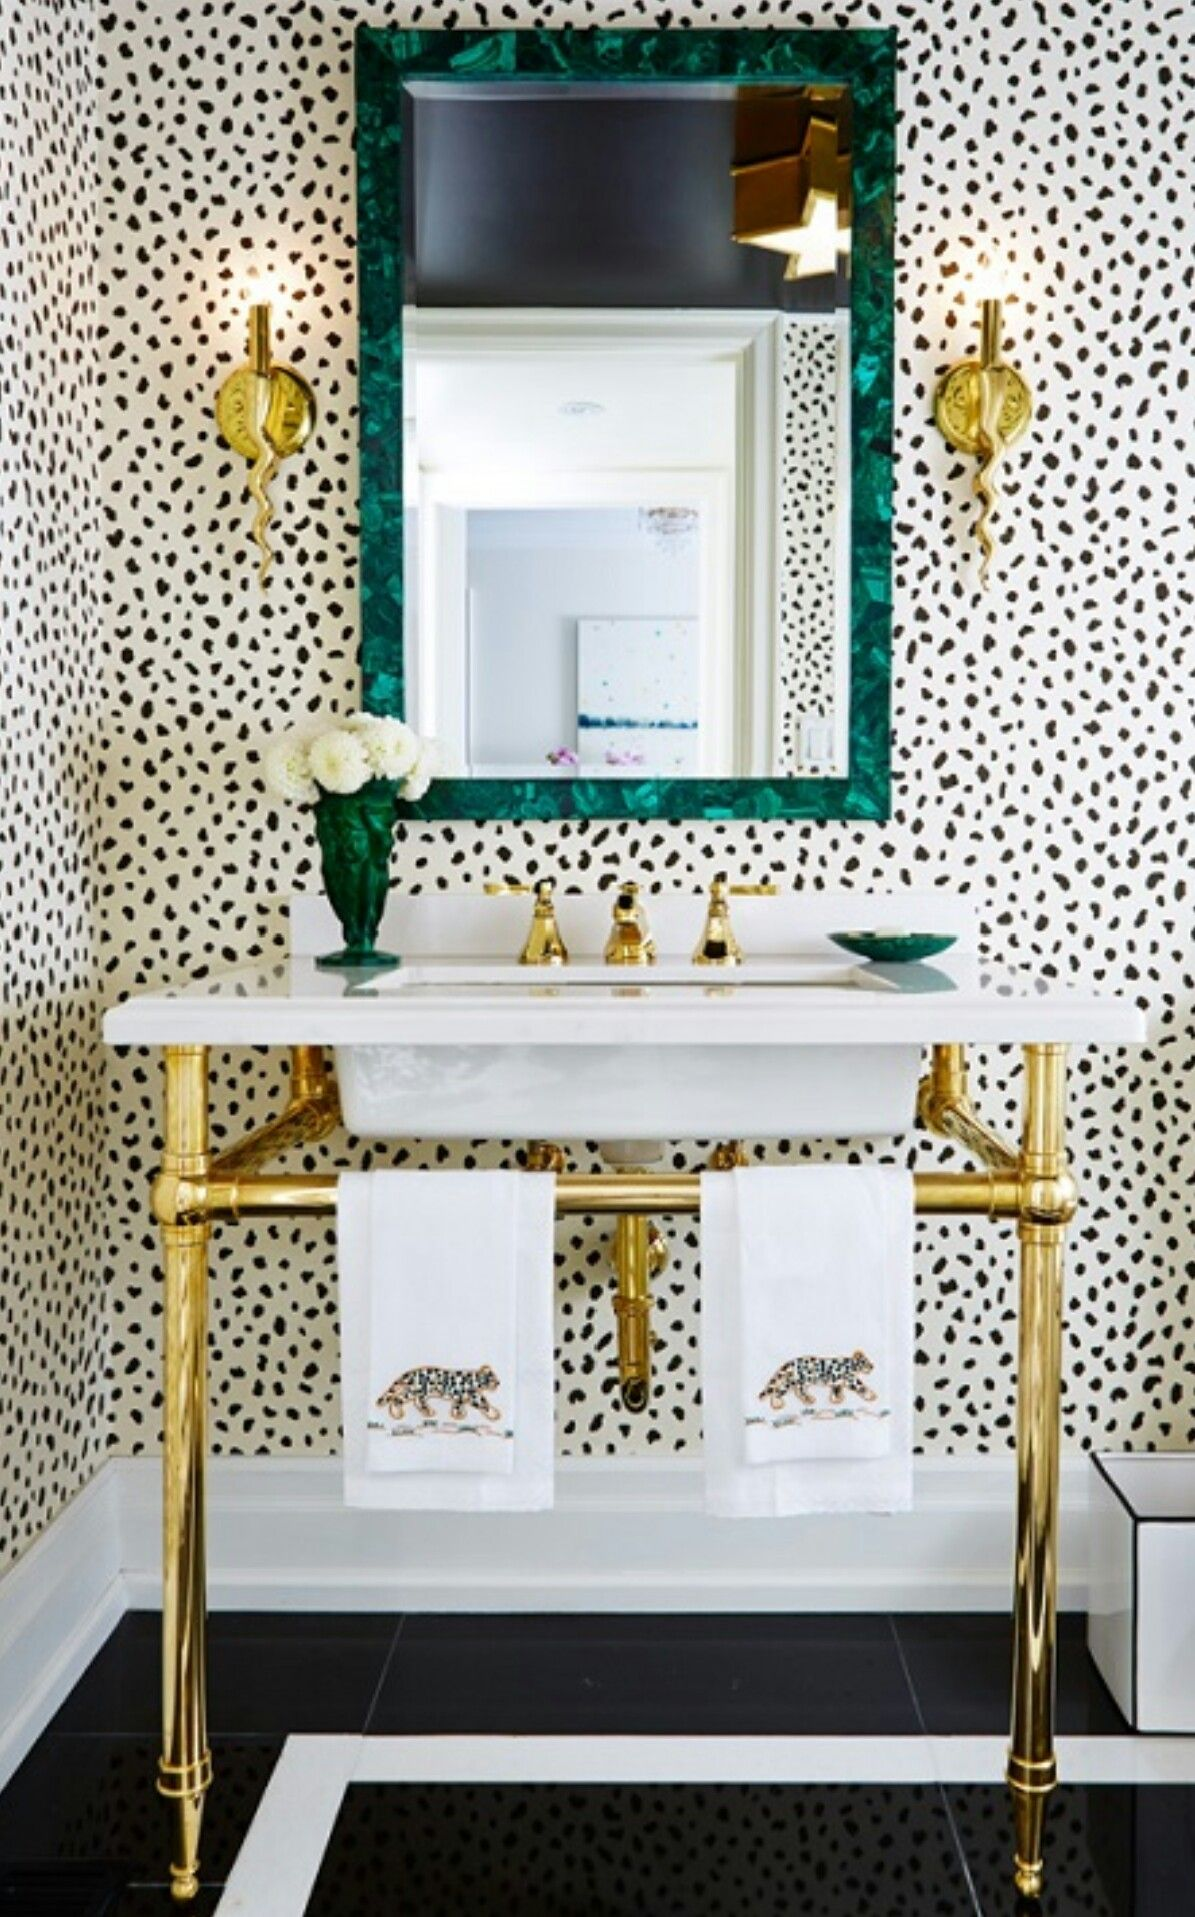 Thibaut Tanzania Wallpaper Beautiful Polka Dot Design That Is So Chic And Will Never Go Out Of Style Small Bathroom Decor Glamorous Bathroom Bathroom Decor